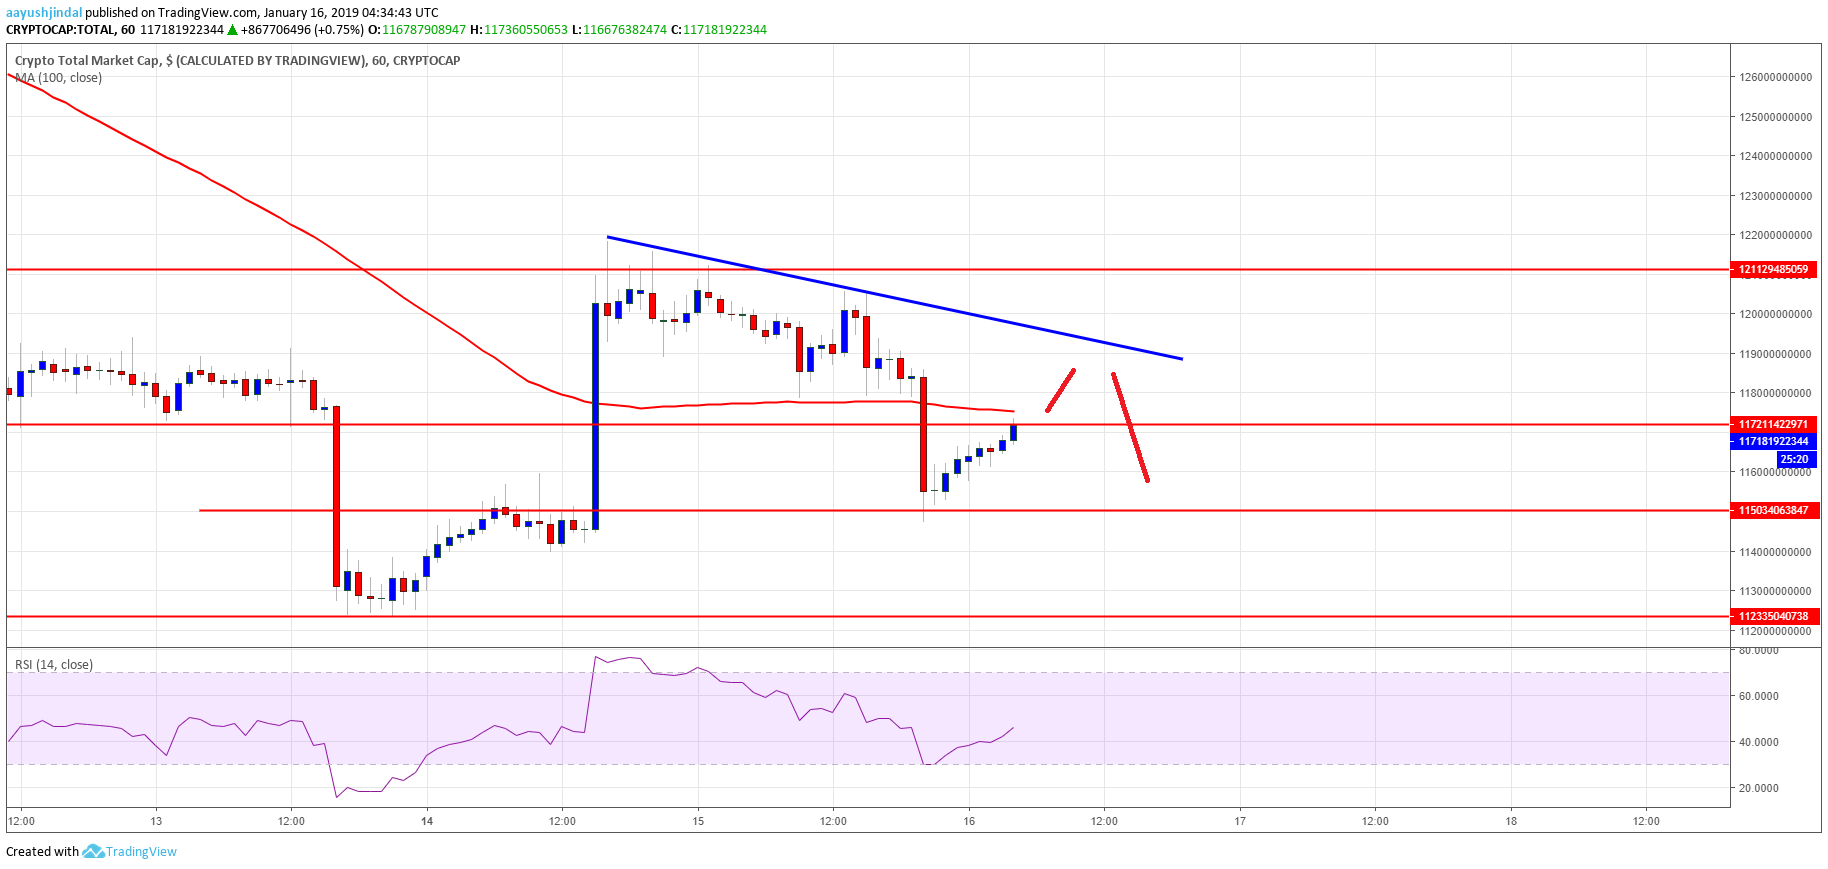 Crypto Market Update: Stellar (XLM), Bitcoin Cash, Tron (TRX), ADA Price Analysis